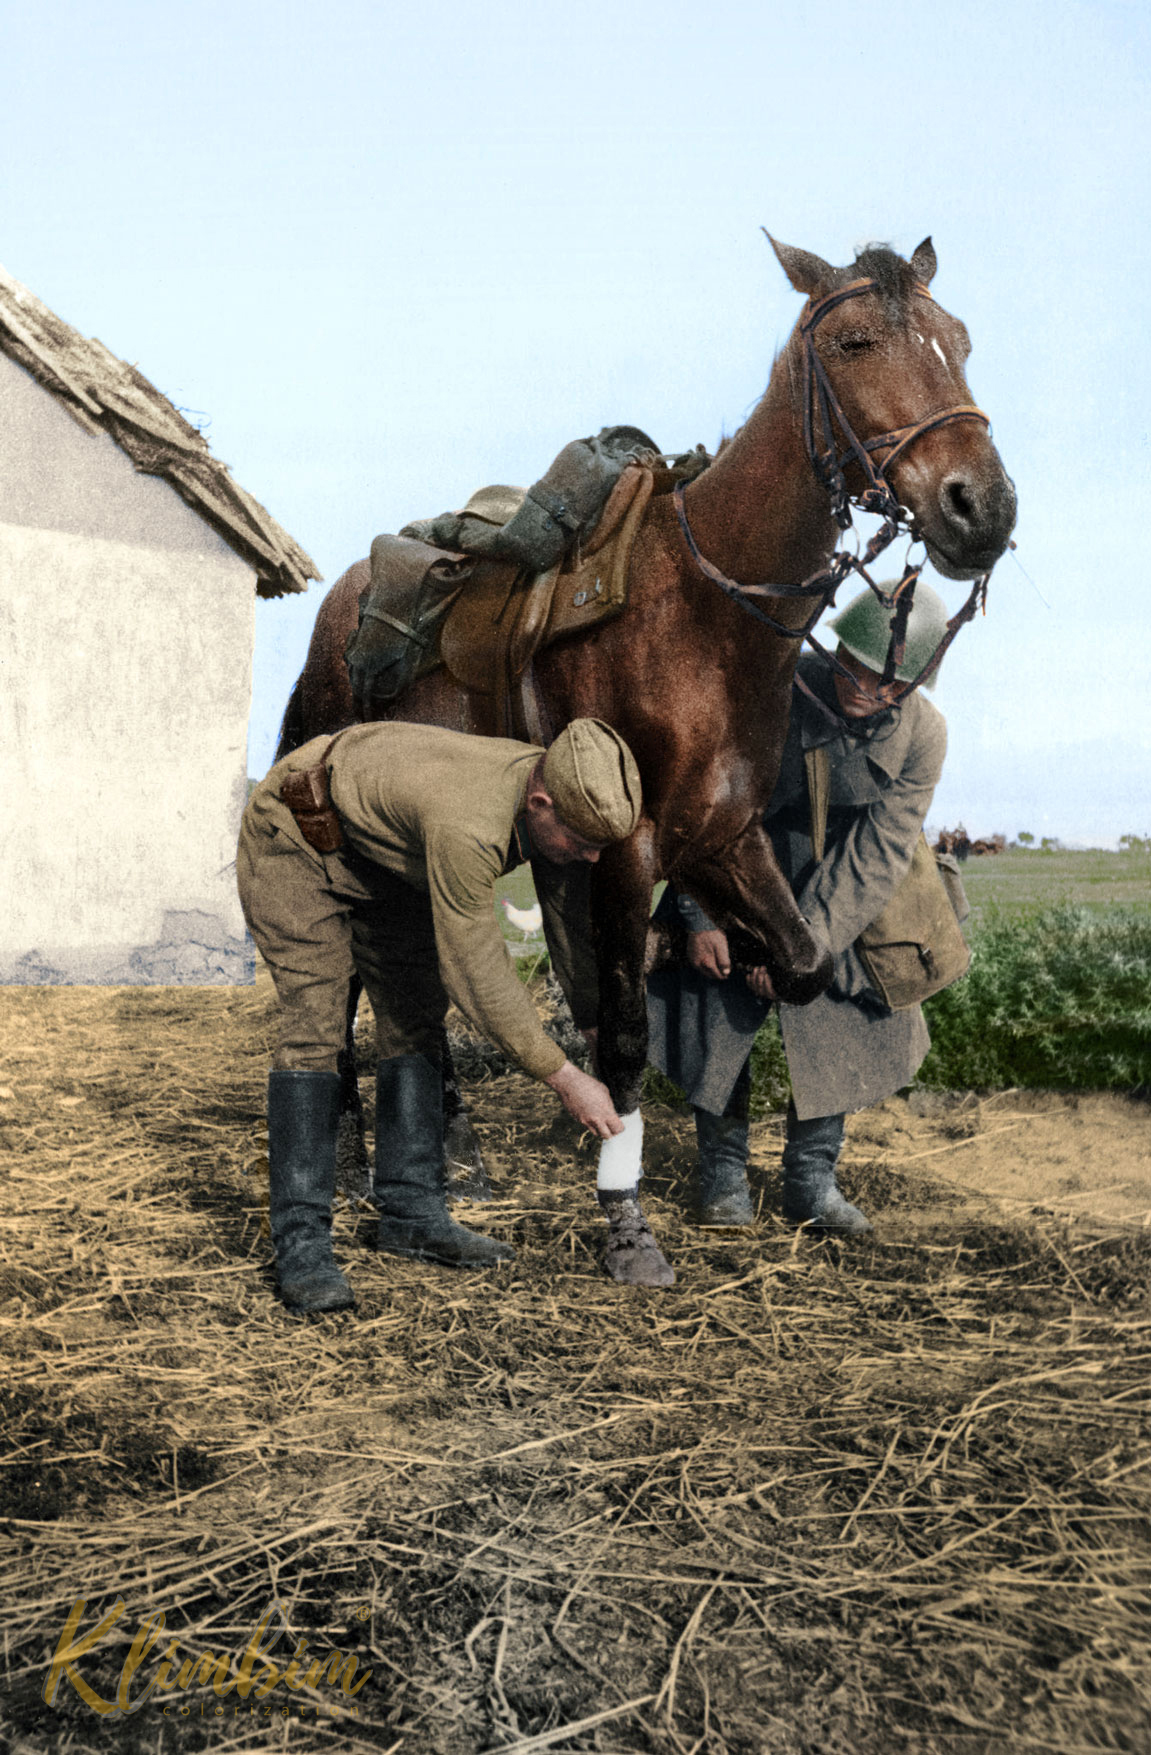 Soviet soldiers treating an injured horse